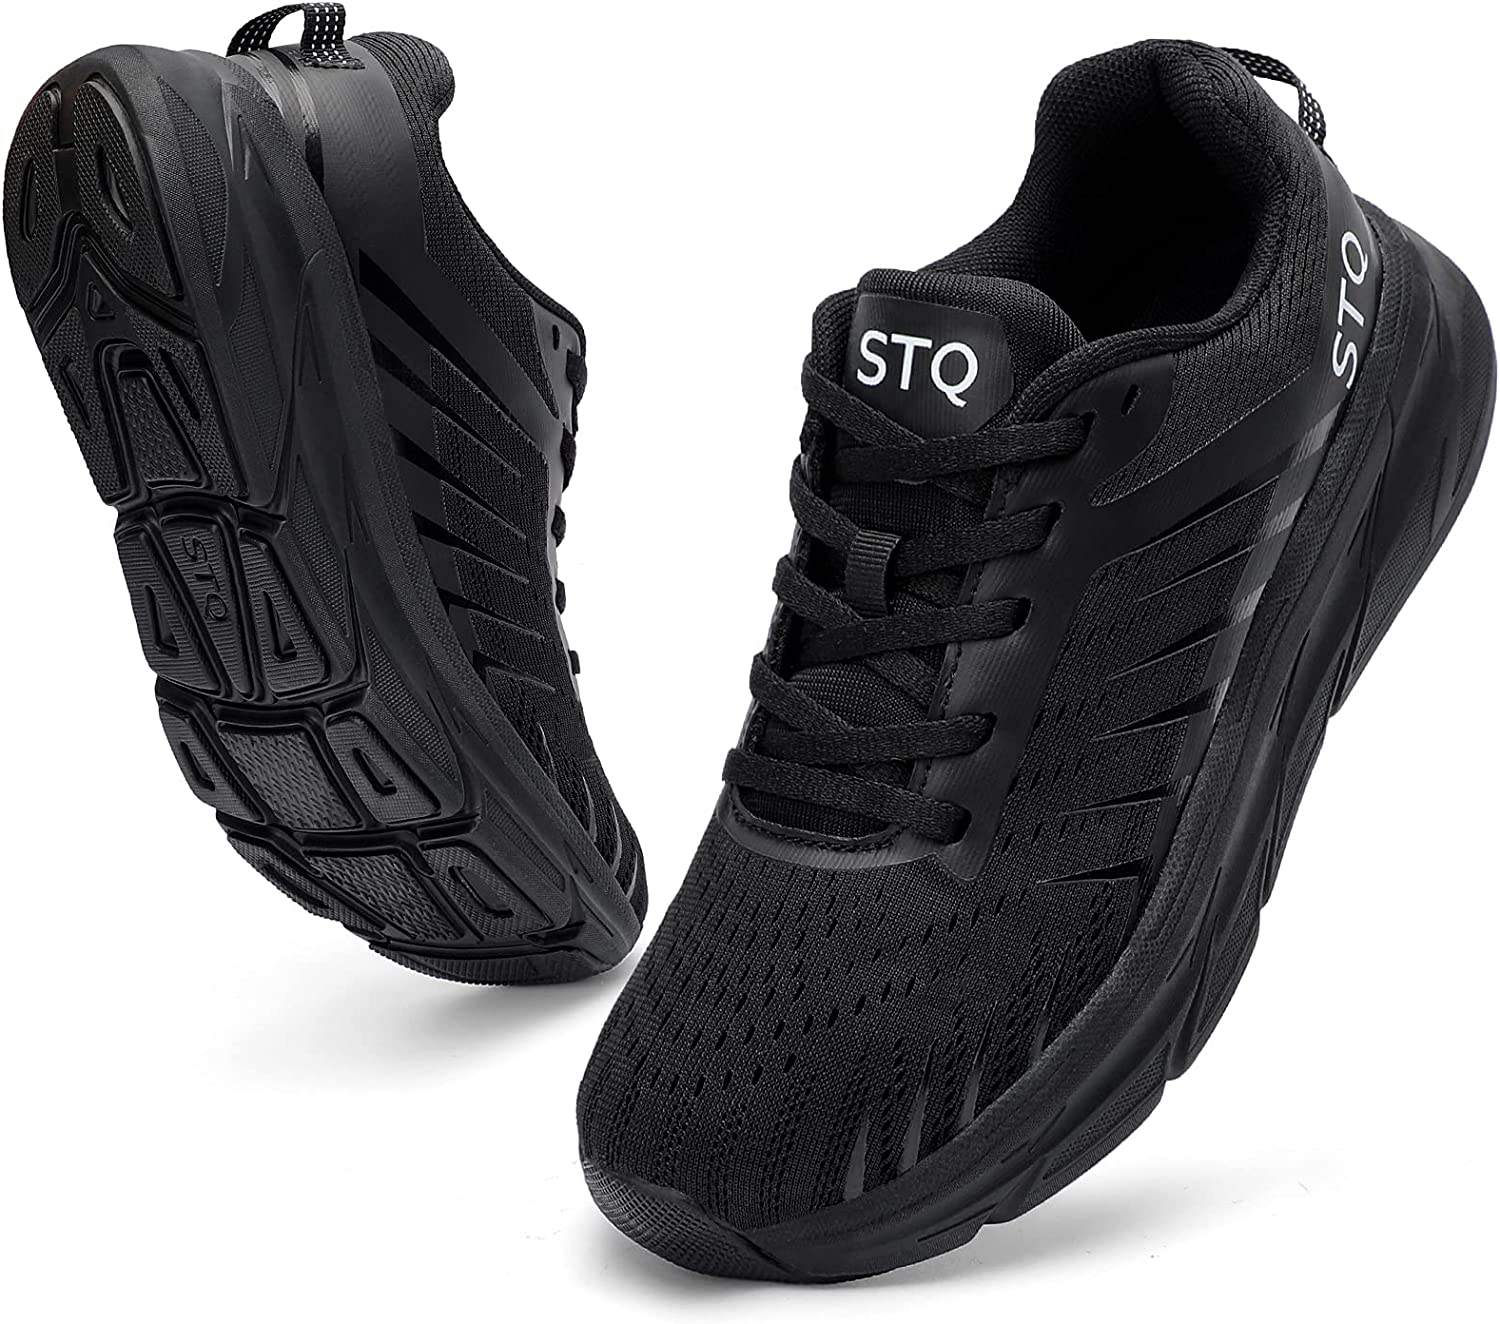 STQ Running Shoes for Women Cushion Breathable Tennis Sneakers w